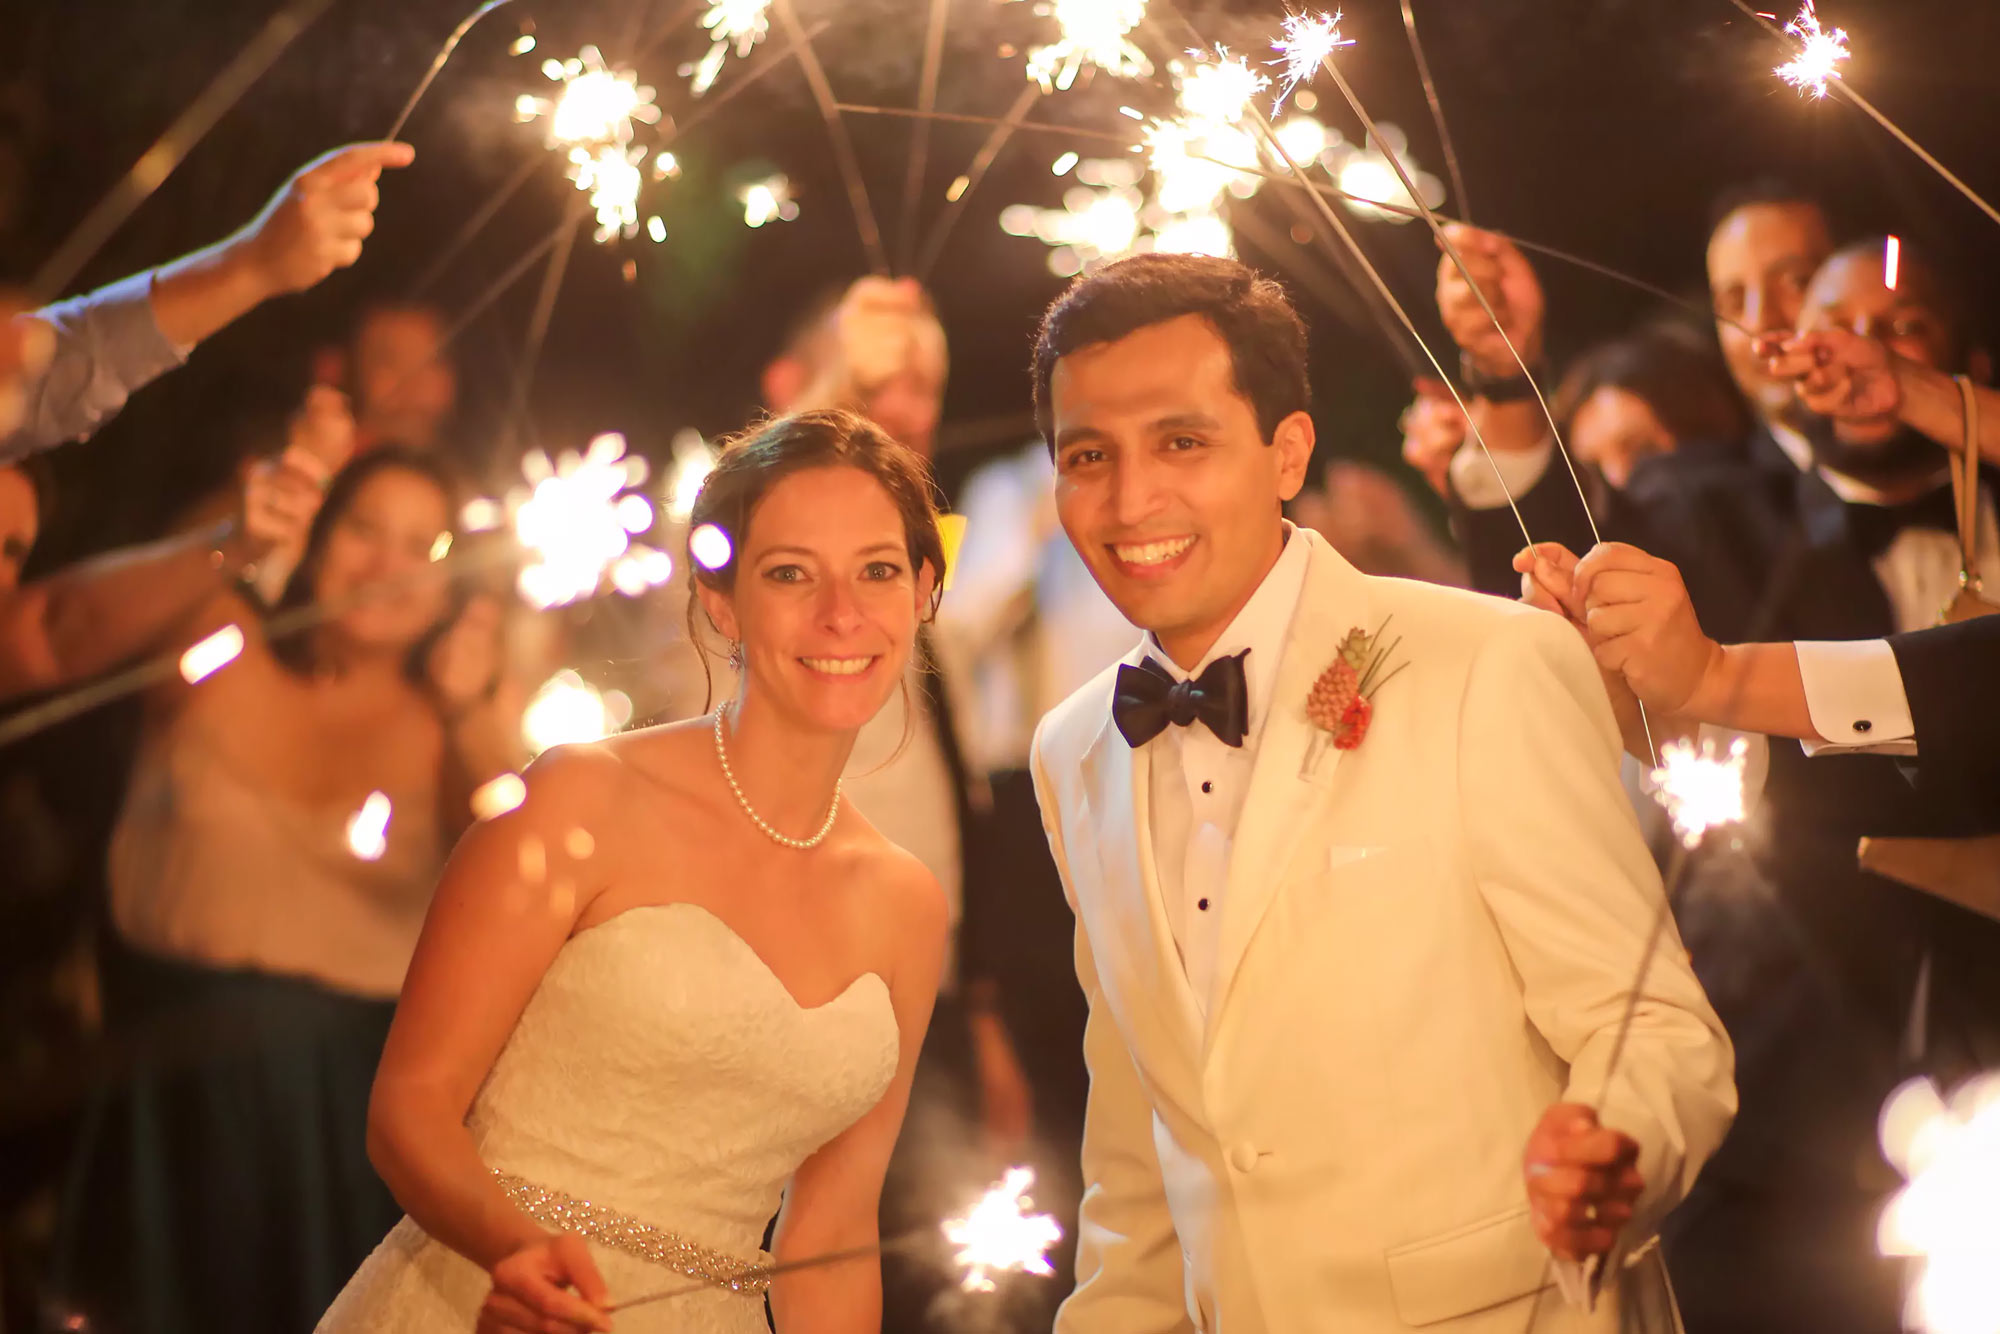 36 Gold Sparklers Long Sparklers for Weddings and Celebrations